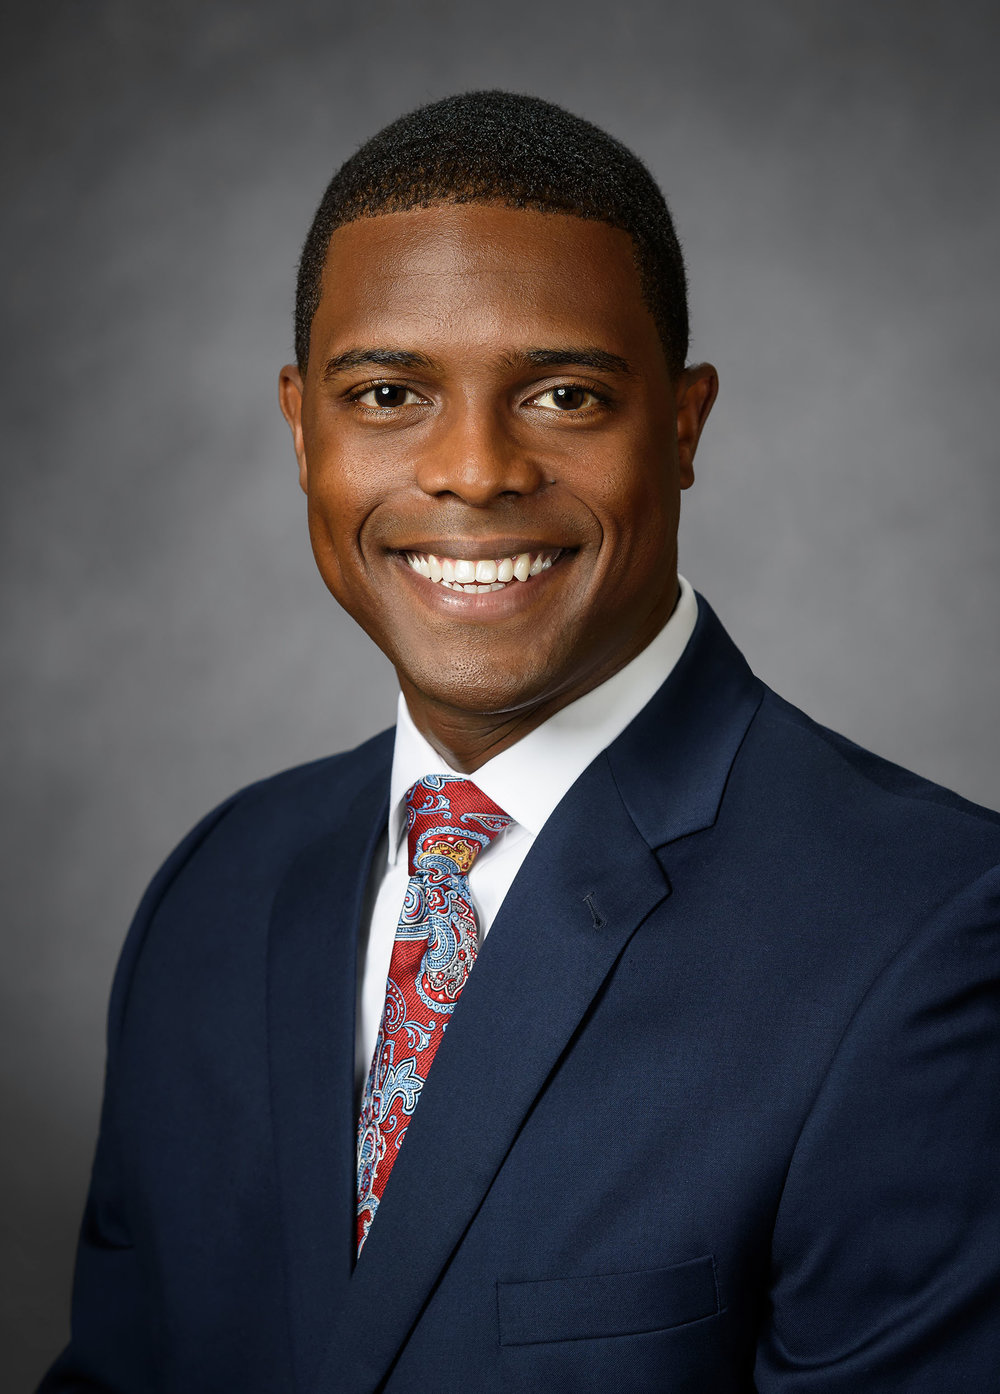 Executive headshot of Leo, a manager with the Cintas company. The medium-gray background works well with almost any clothing choice and any skin tone.